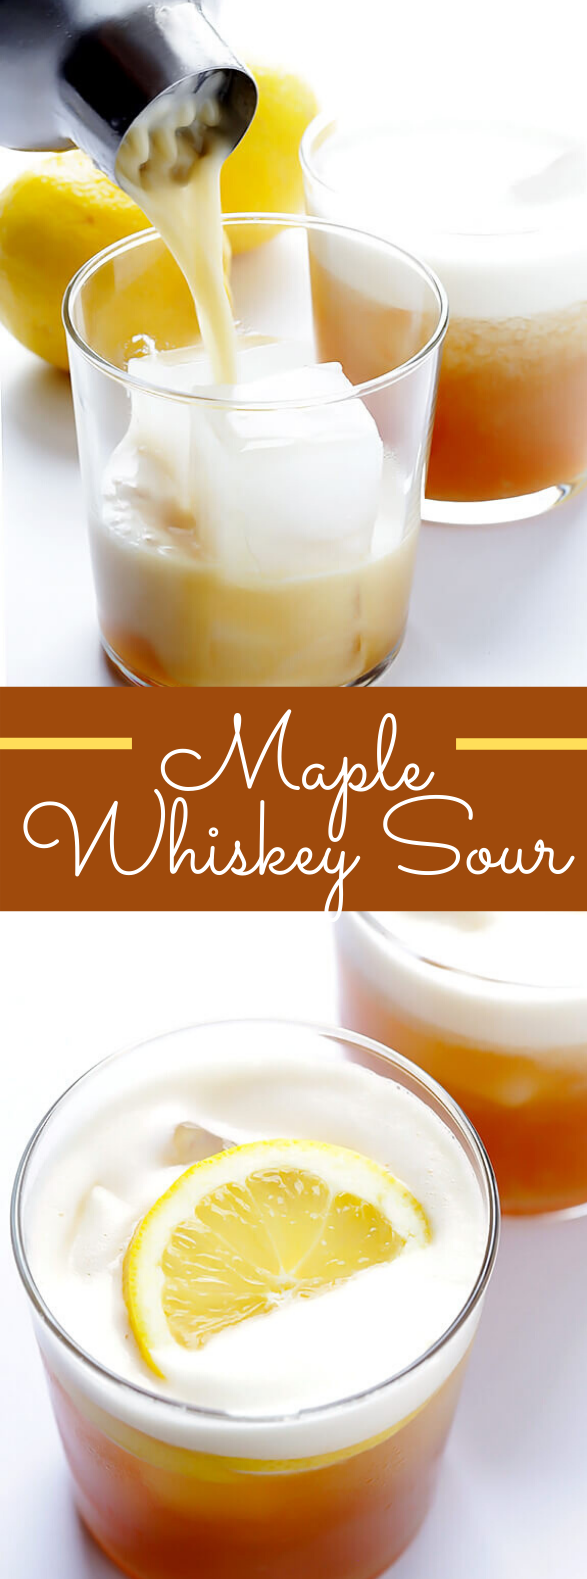 MAPLE WHISKEY SOUR #drinks #cocktails #whiskey #partydrink #vodka